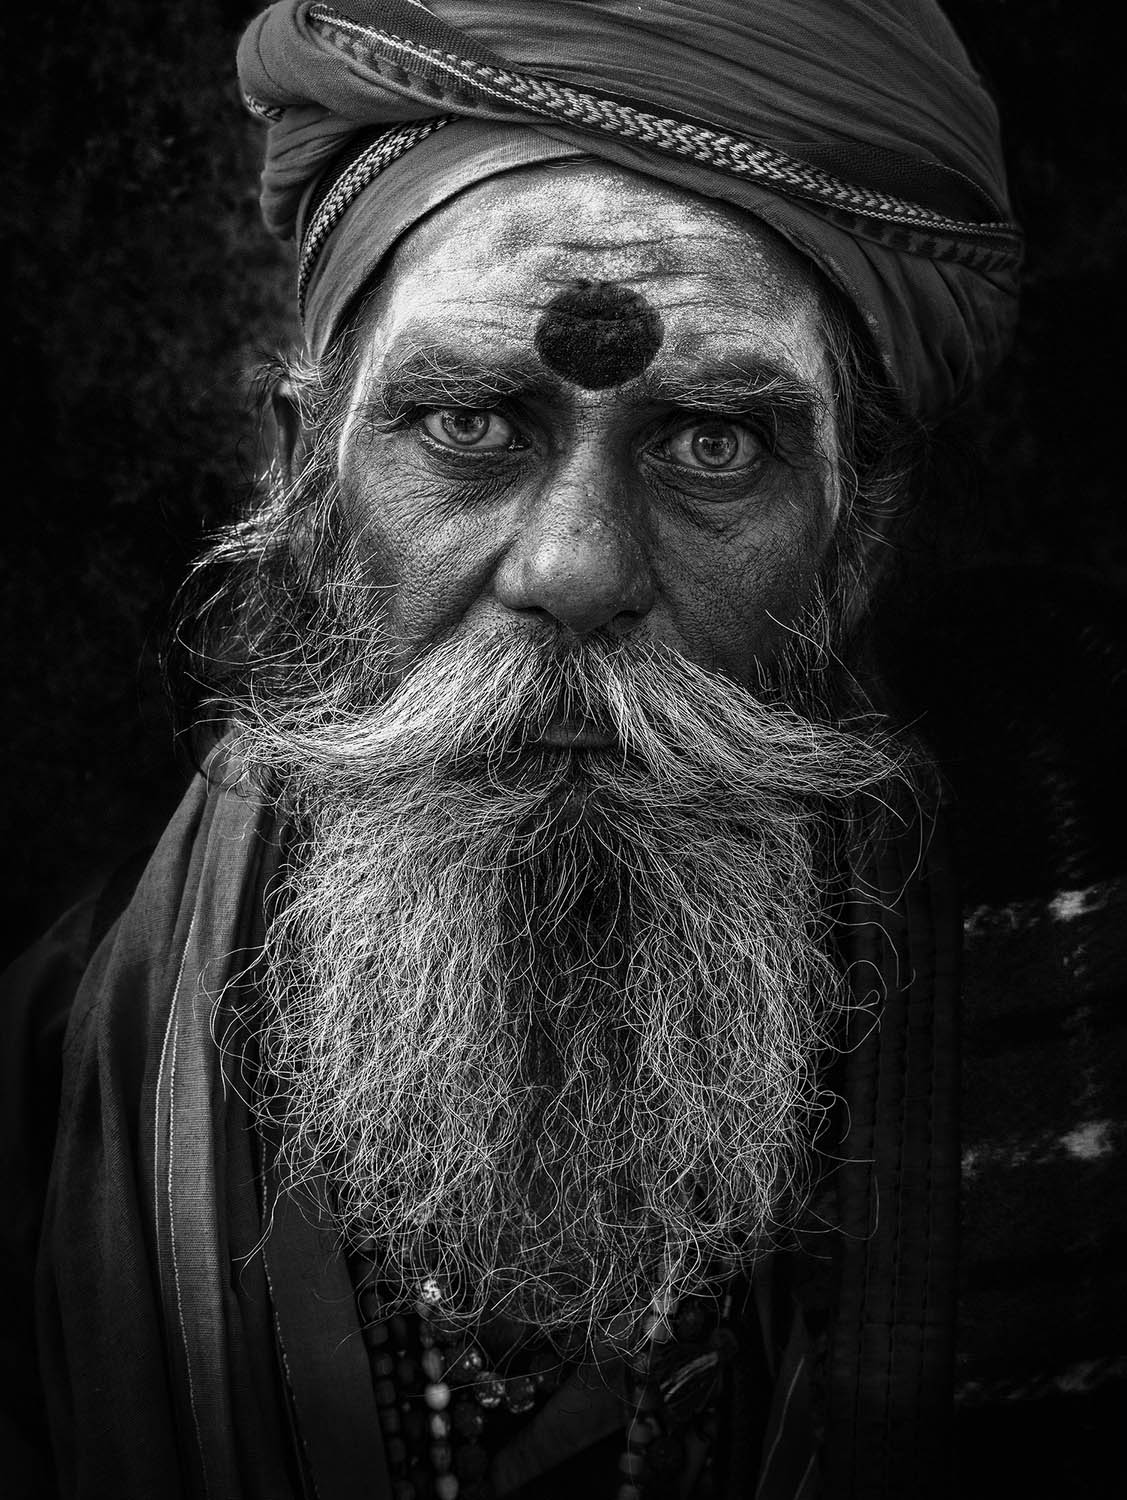 portrait photography sage india by mohammed alhajri